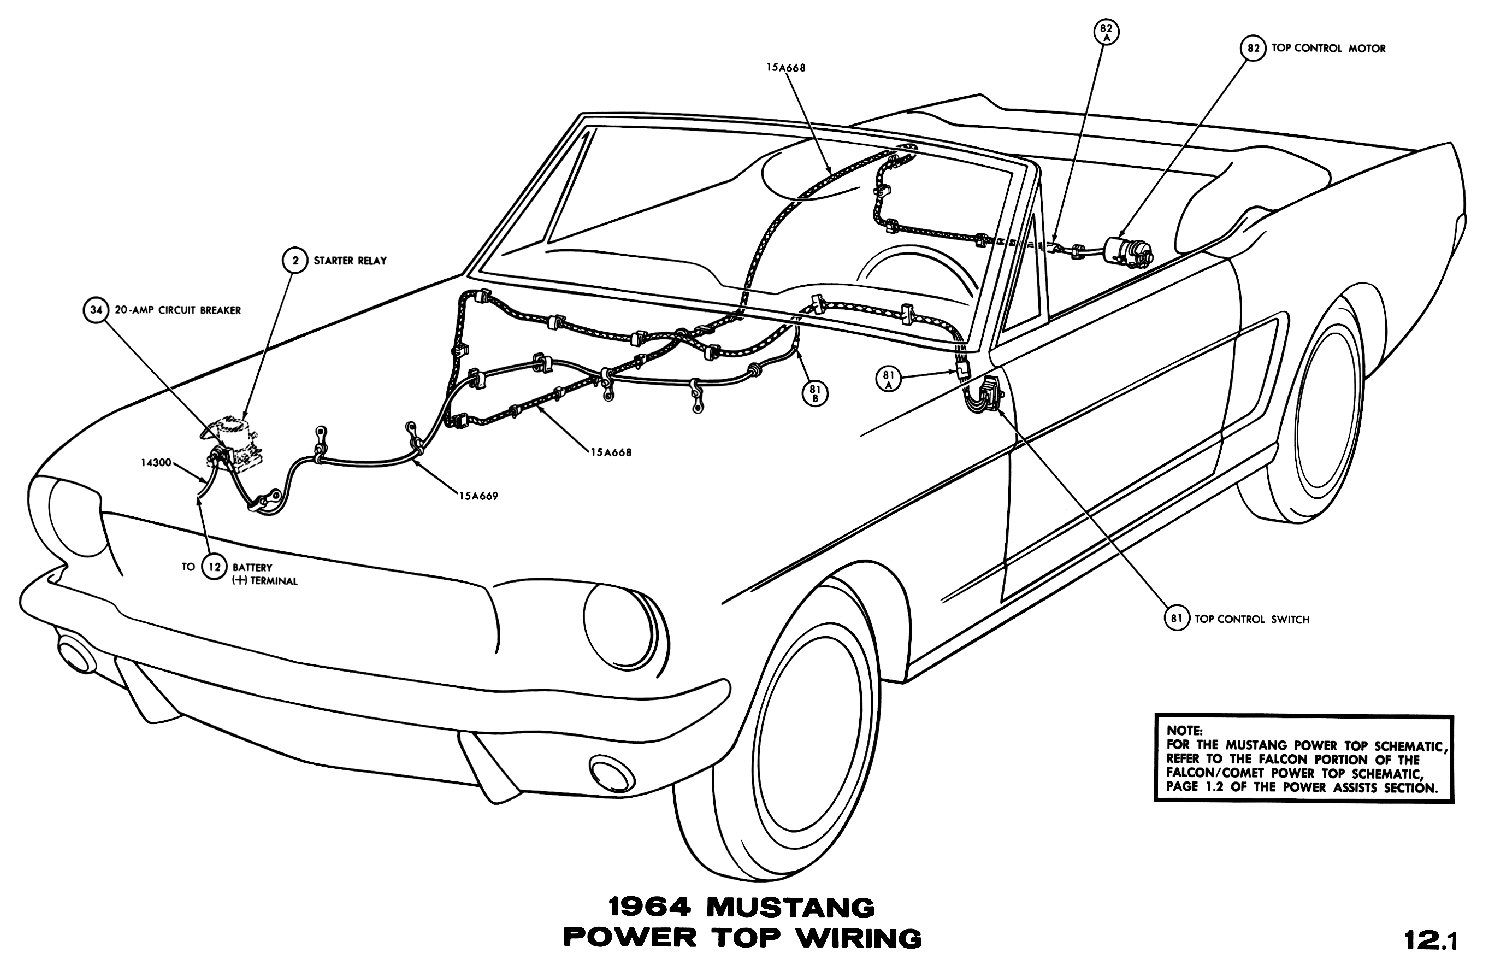 1964 Mustang Wiring Diagrams Average Joe Restoration 1968 Diagram Manual Power Top Pictorial Or Schematic